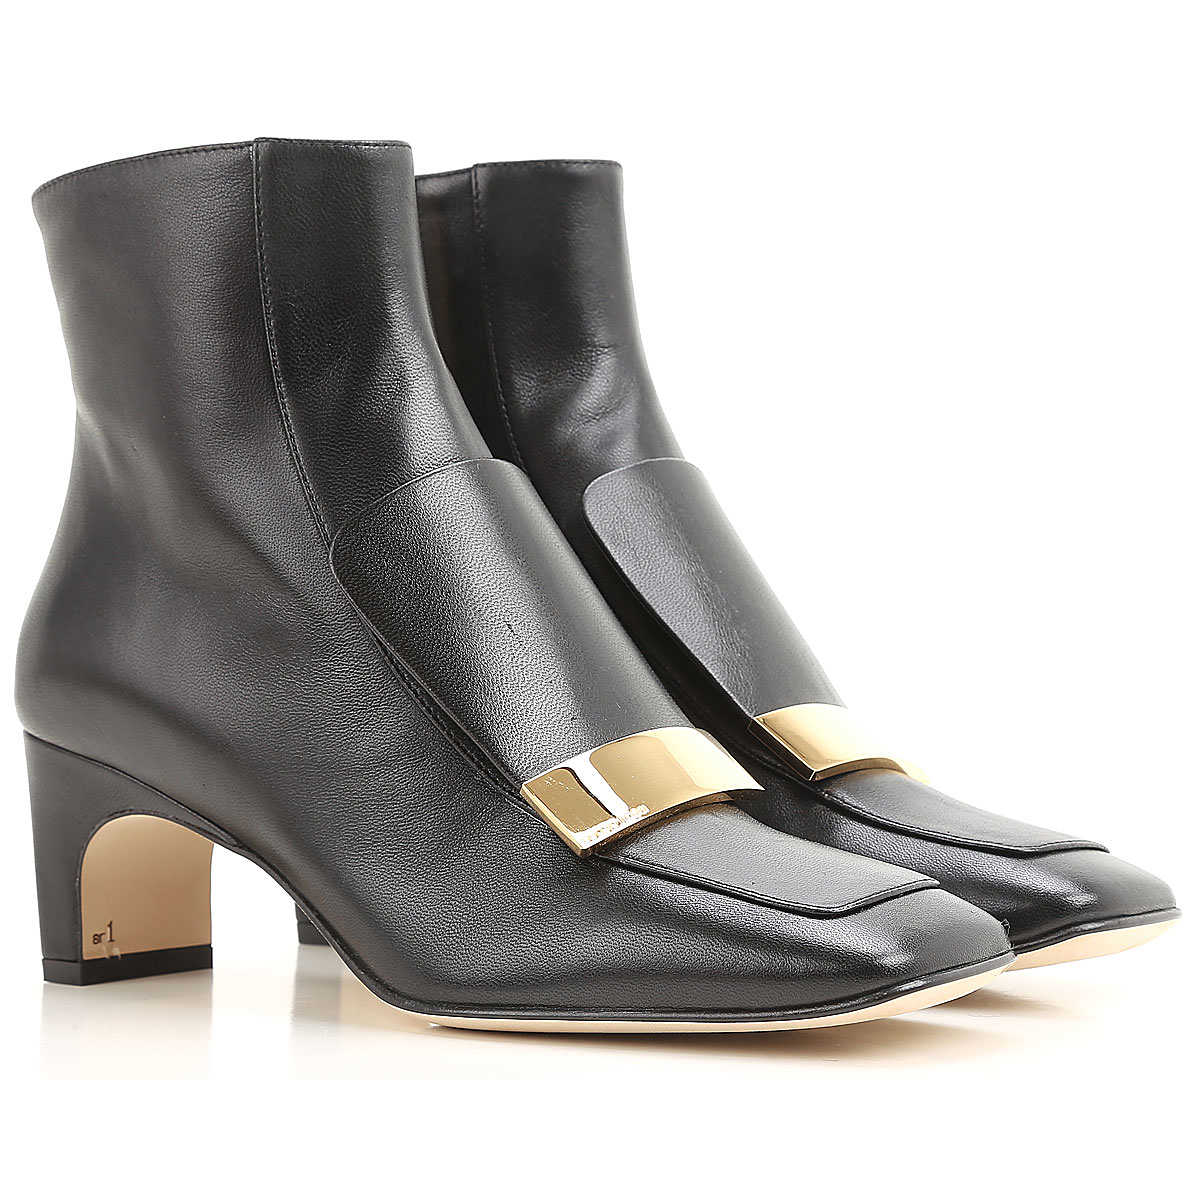 Sergio Rossi Boots for Women Booties On Sale in Outlet - GOOFASH